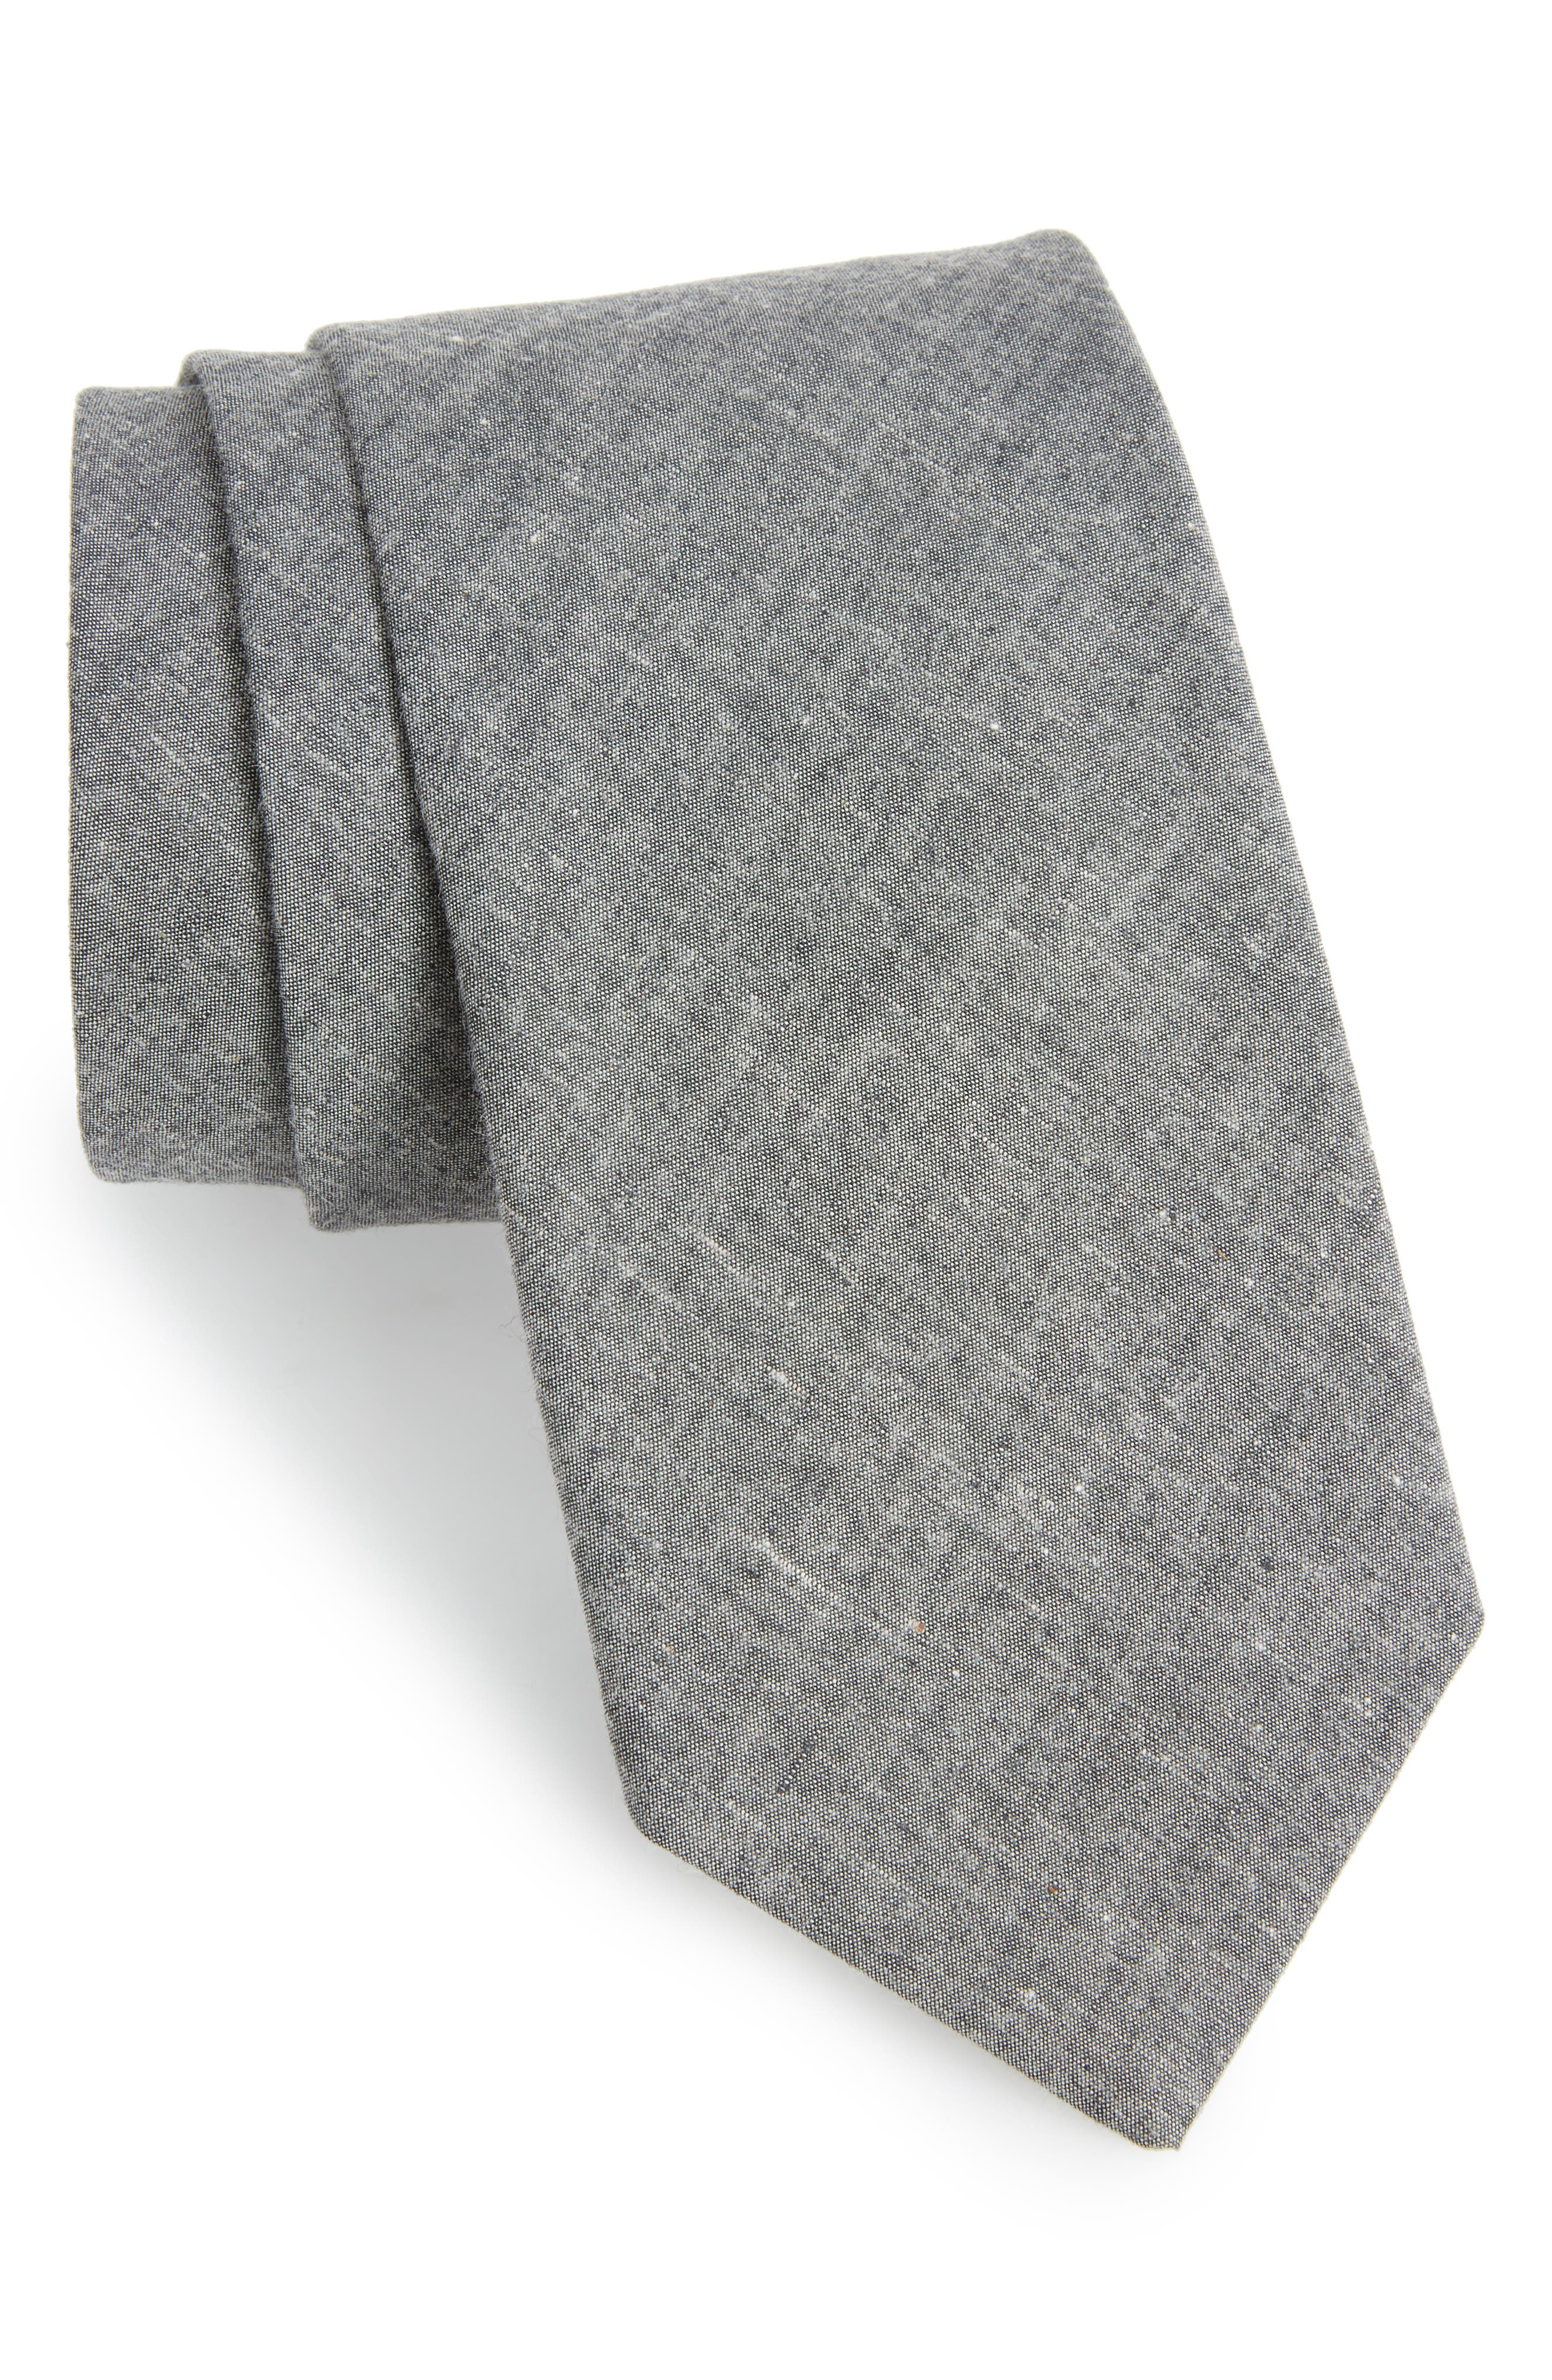 Chambray Cotton Tie,                         Main,                         color,